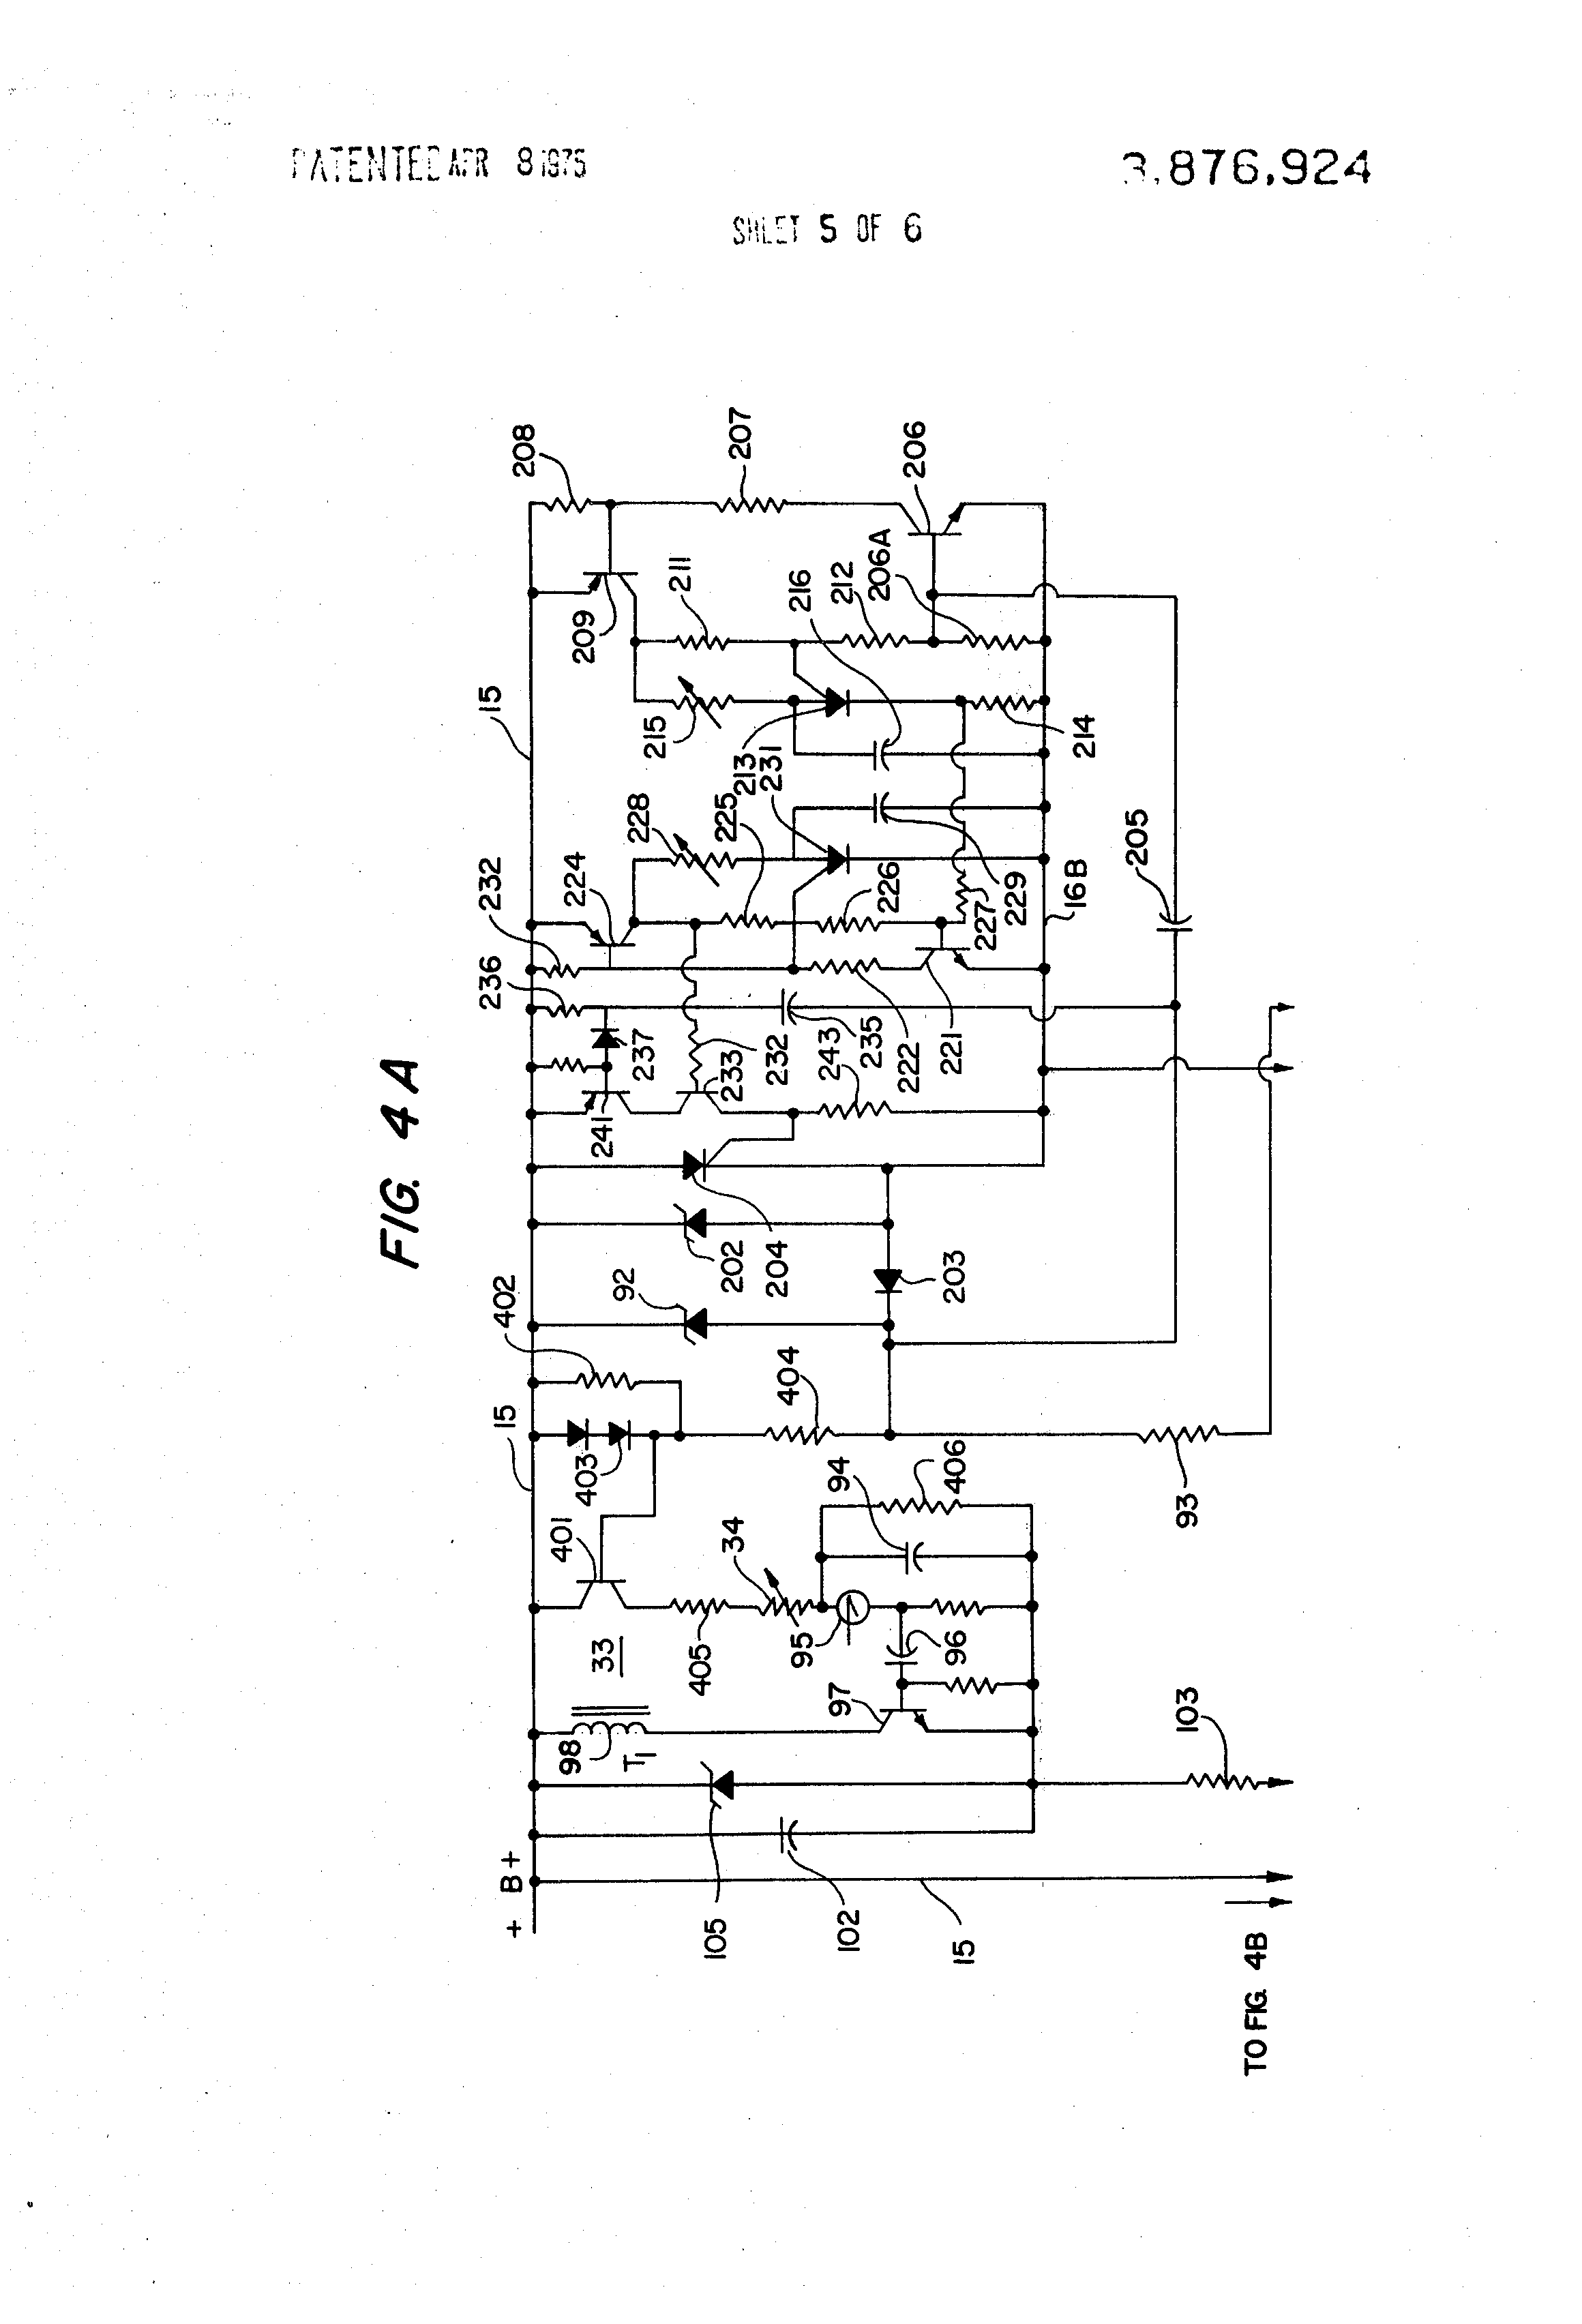 Patent Us3876924 Improved Gating Circuit For Thyristor Power Scr High Alarm Driver Design Drawing